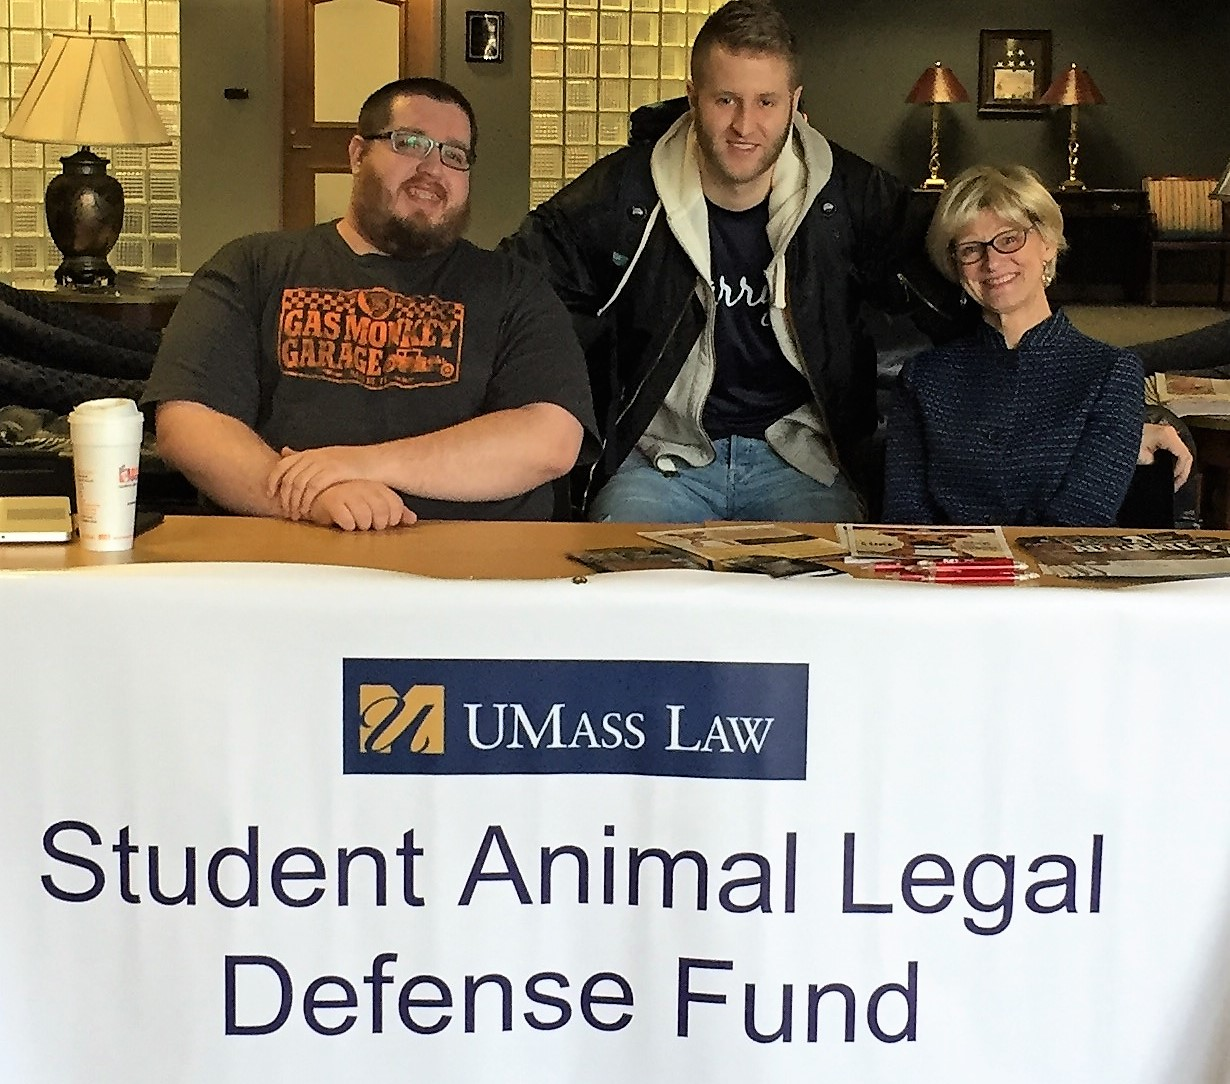 Student Animal Legal Defense Fund tabling event, March 2, 2017, with SALDF President Anthony Voss, member Casey Christo, and Vice President Mary Chaffee